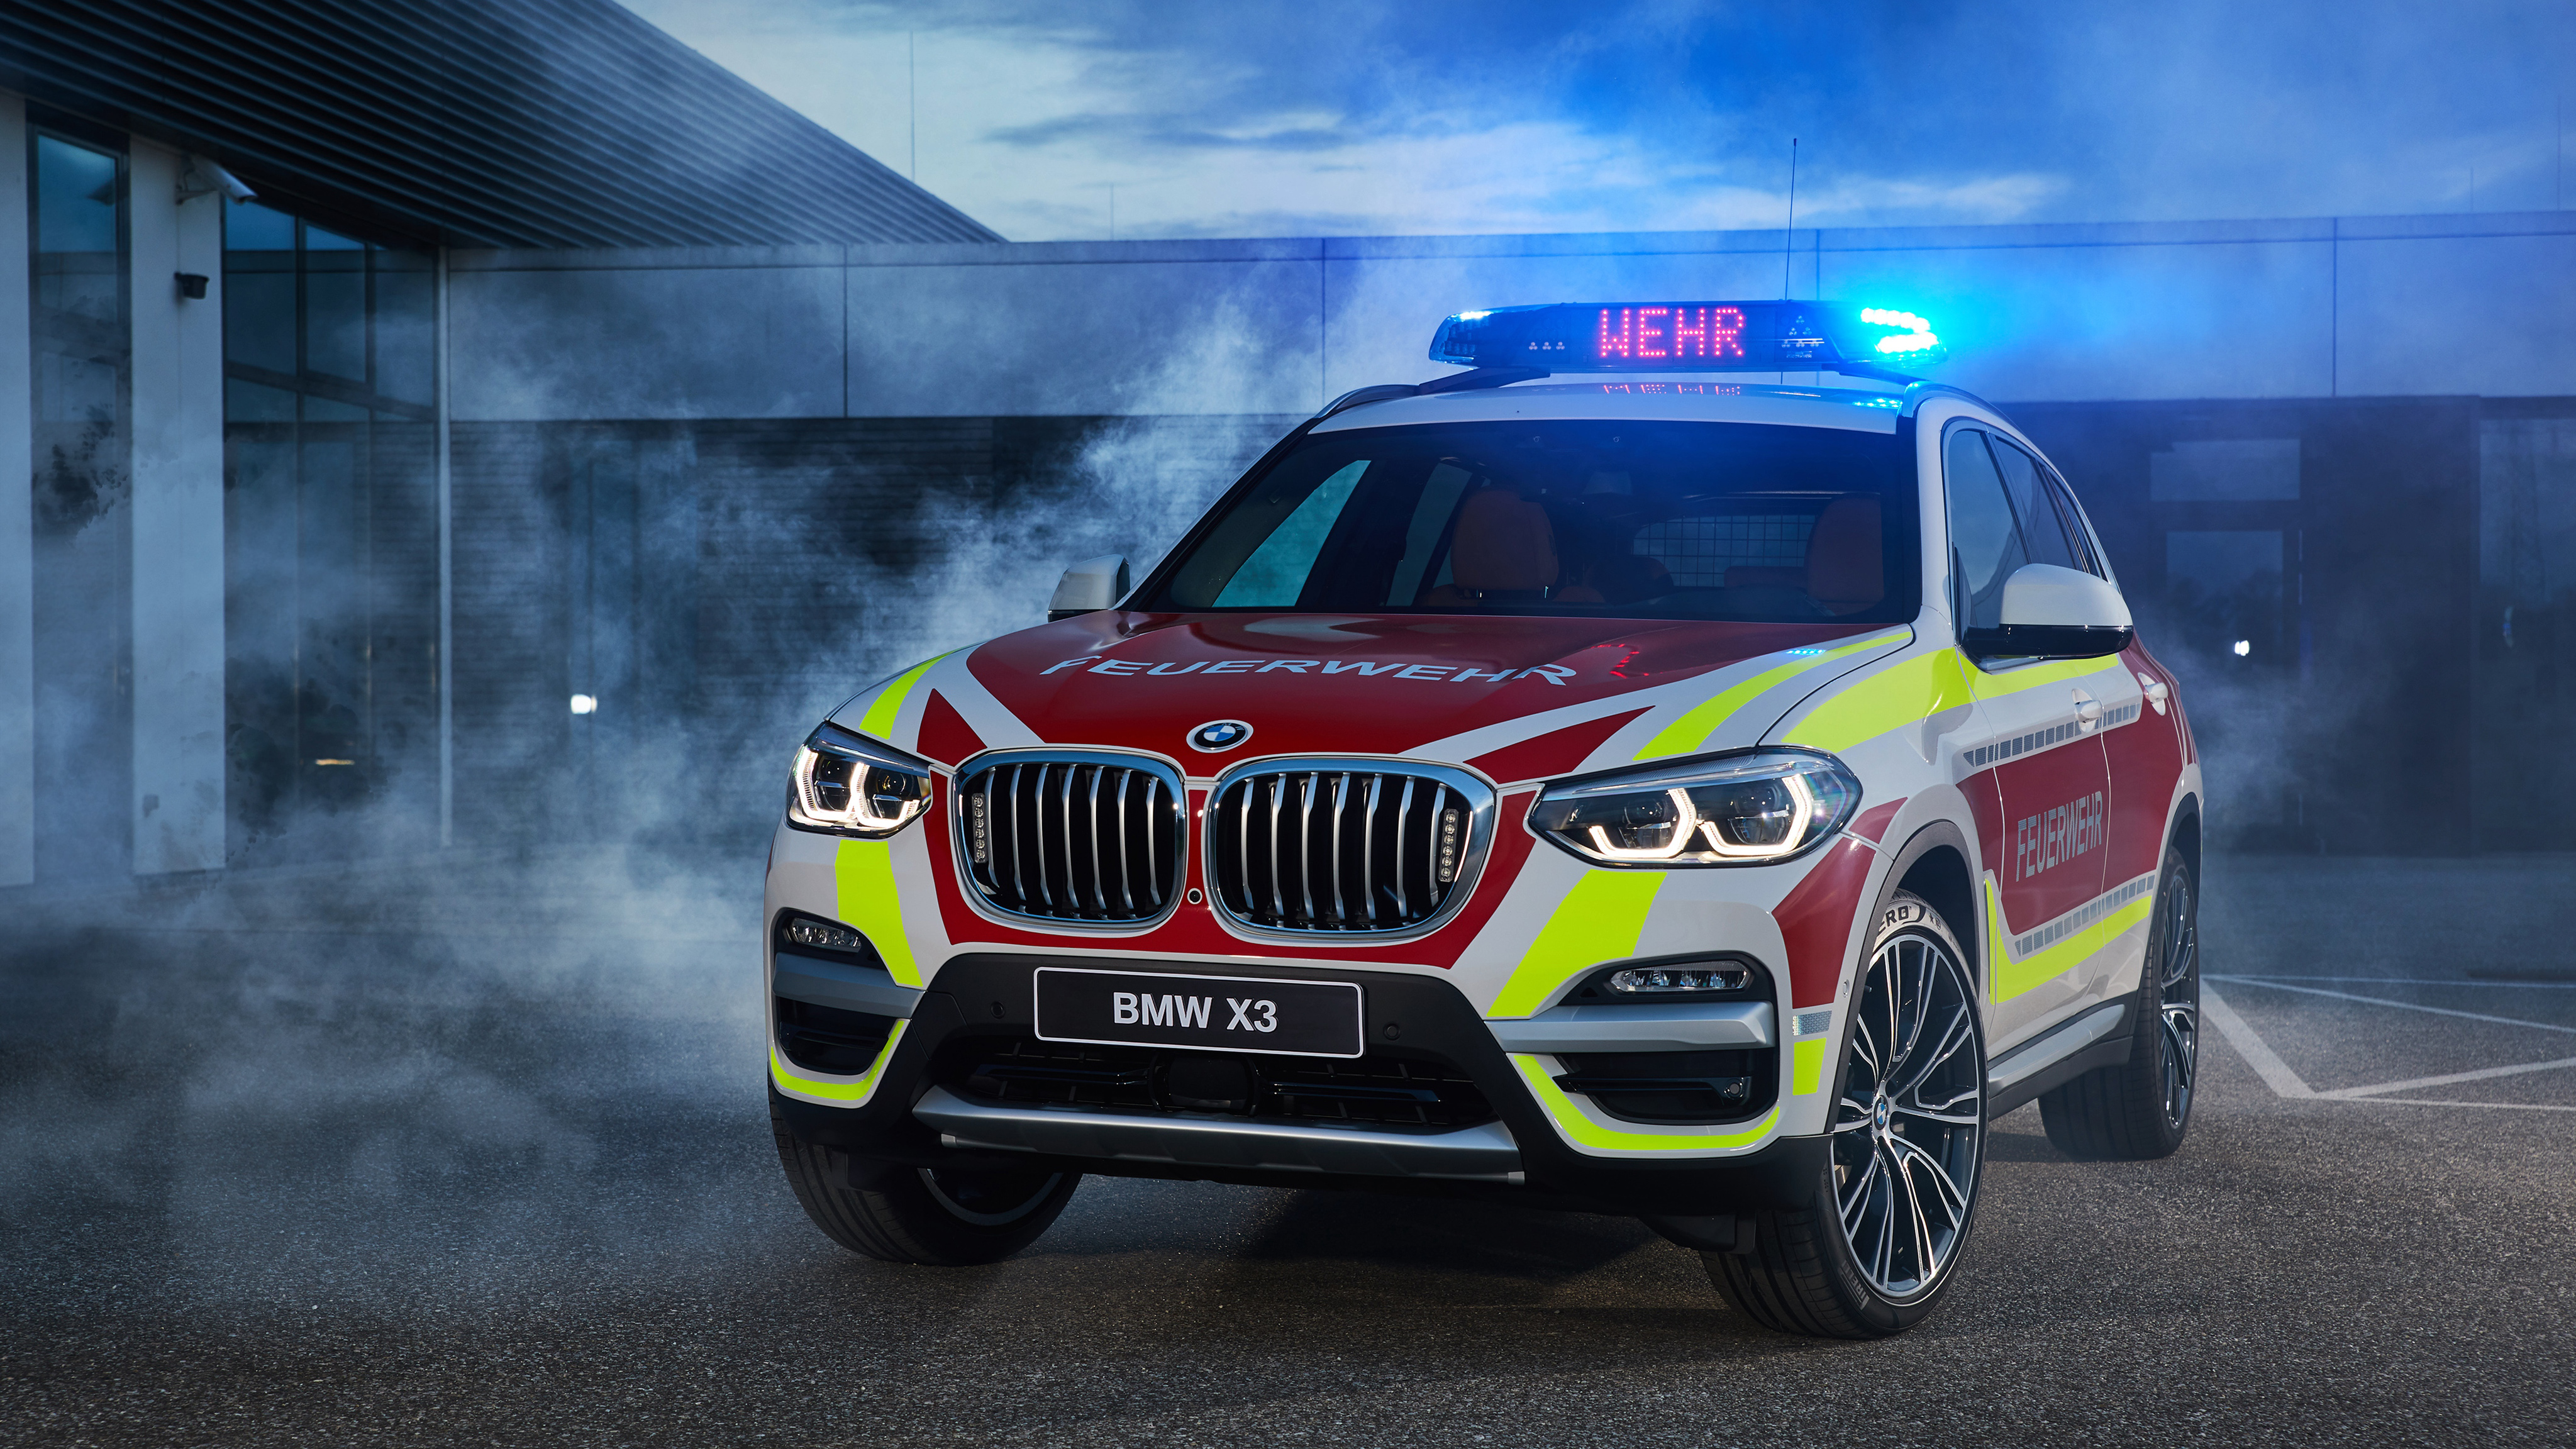 2018 Bmw X3 Xdrive20d Feuerwehr 4k Wallpaper Hd Car